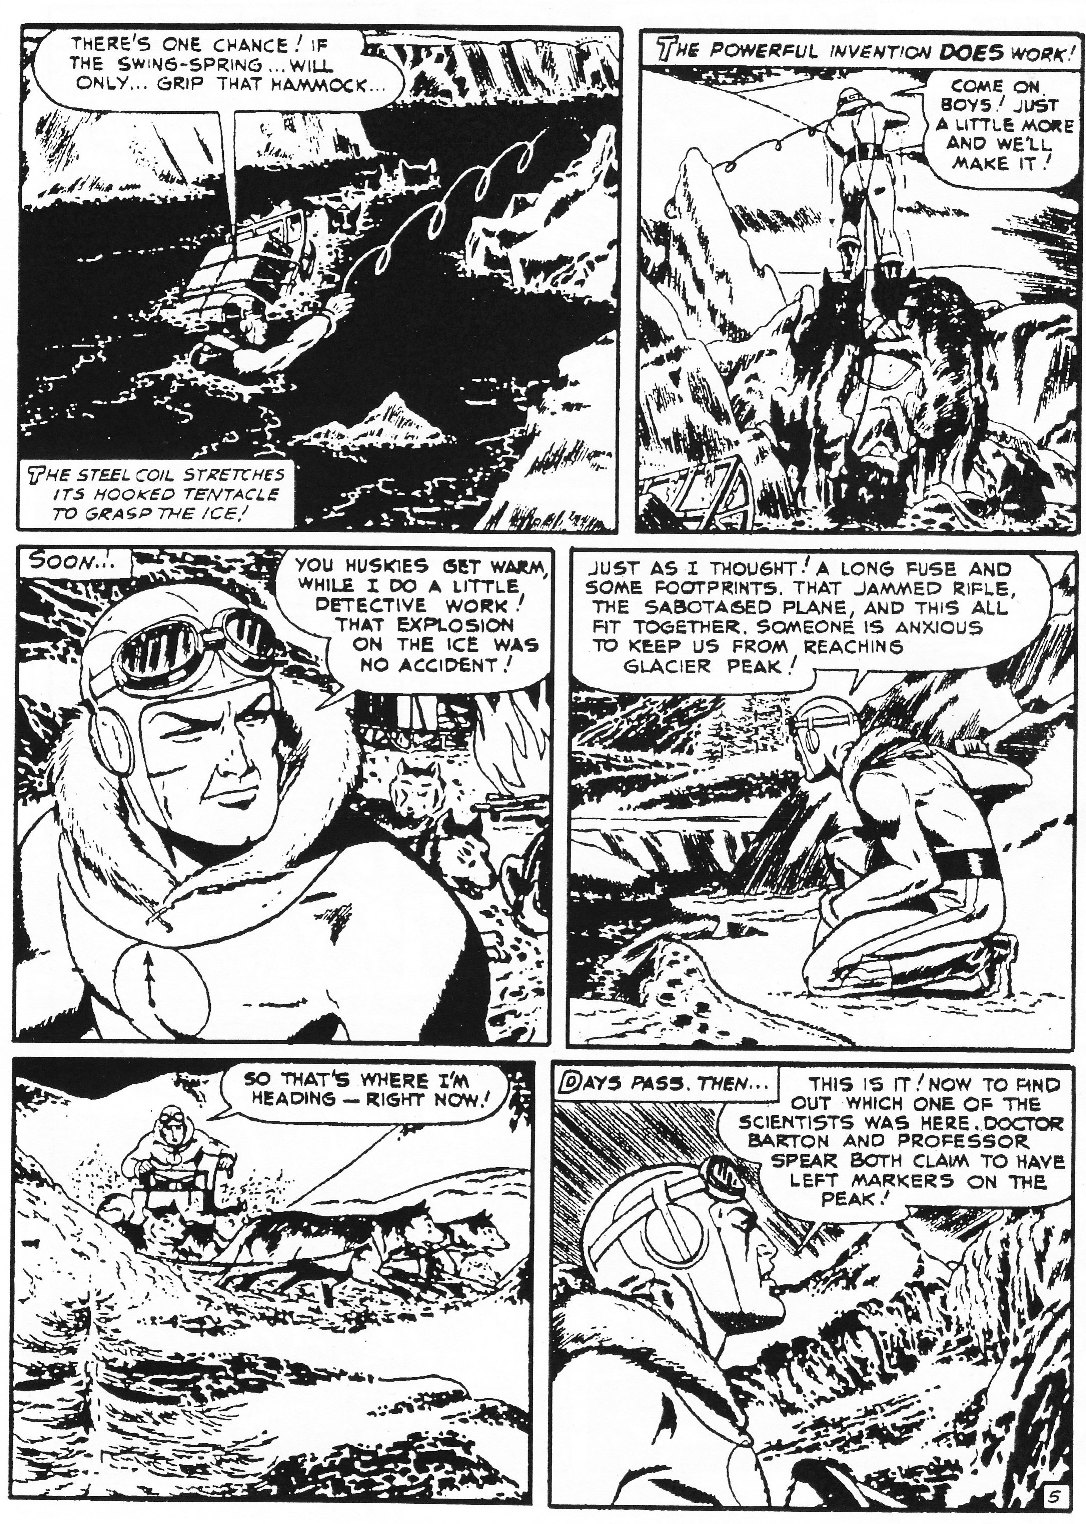 Read online Men of Mystery Comics comic -  Issue #72 - 30